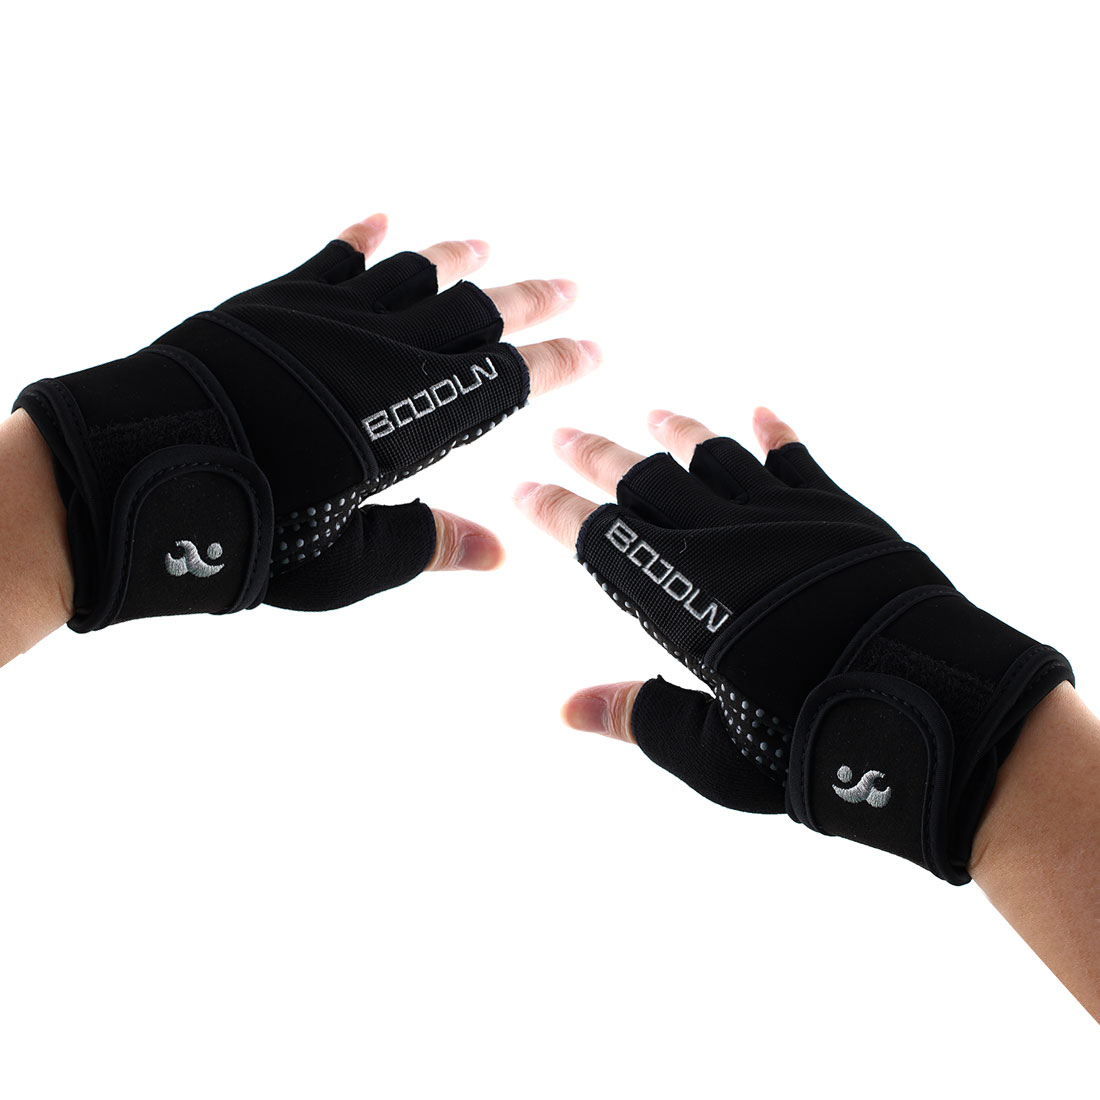 Boodun Authorized Sports Weight Lifting Training Gym Workout Fitness Embroidery Adjustable Anti Slip Half Finger Gloves Silver Tone Size L Pair